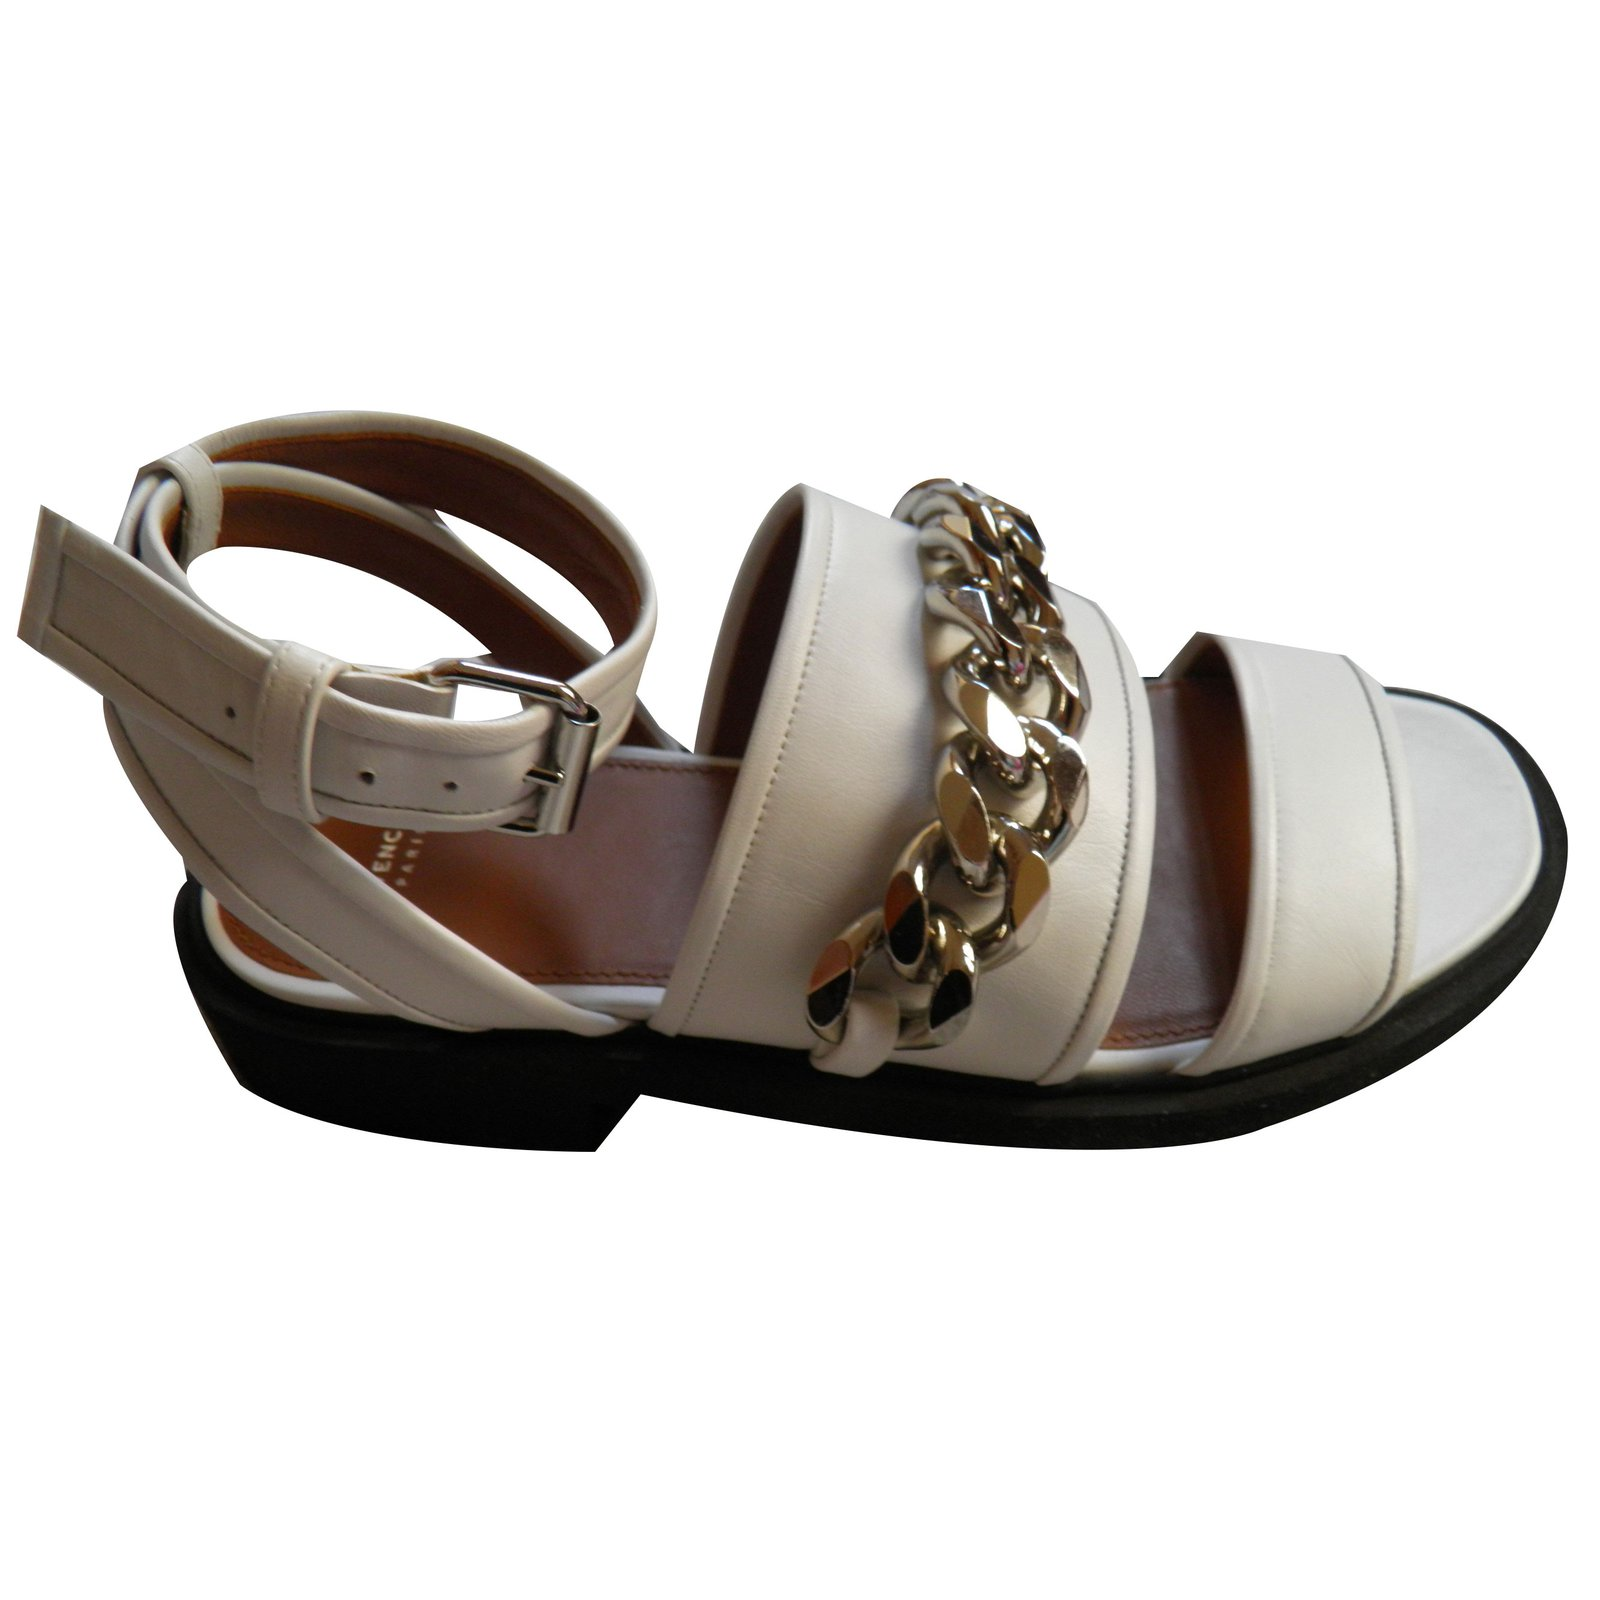 0717c45388e4 Givenchy Sandals Sandals Leather White ref.54829 - Joli Closet